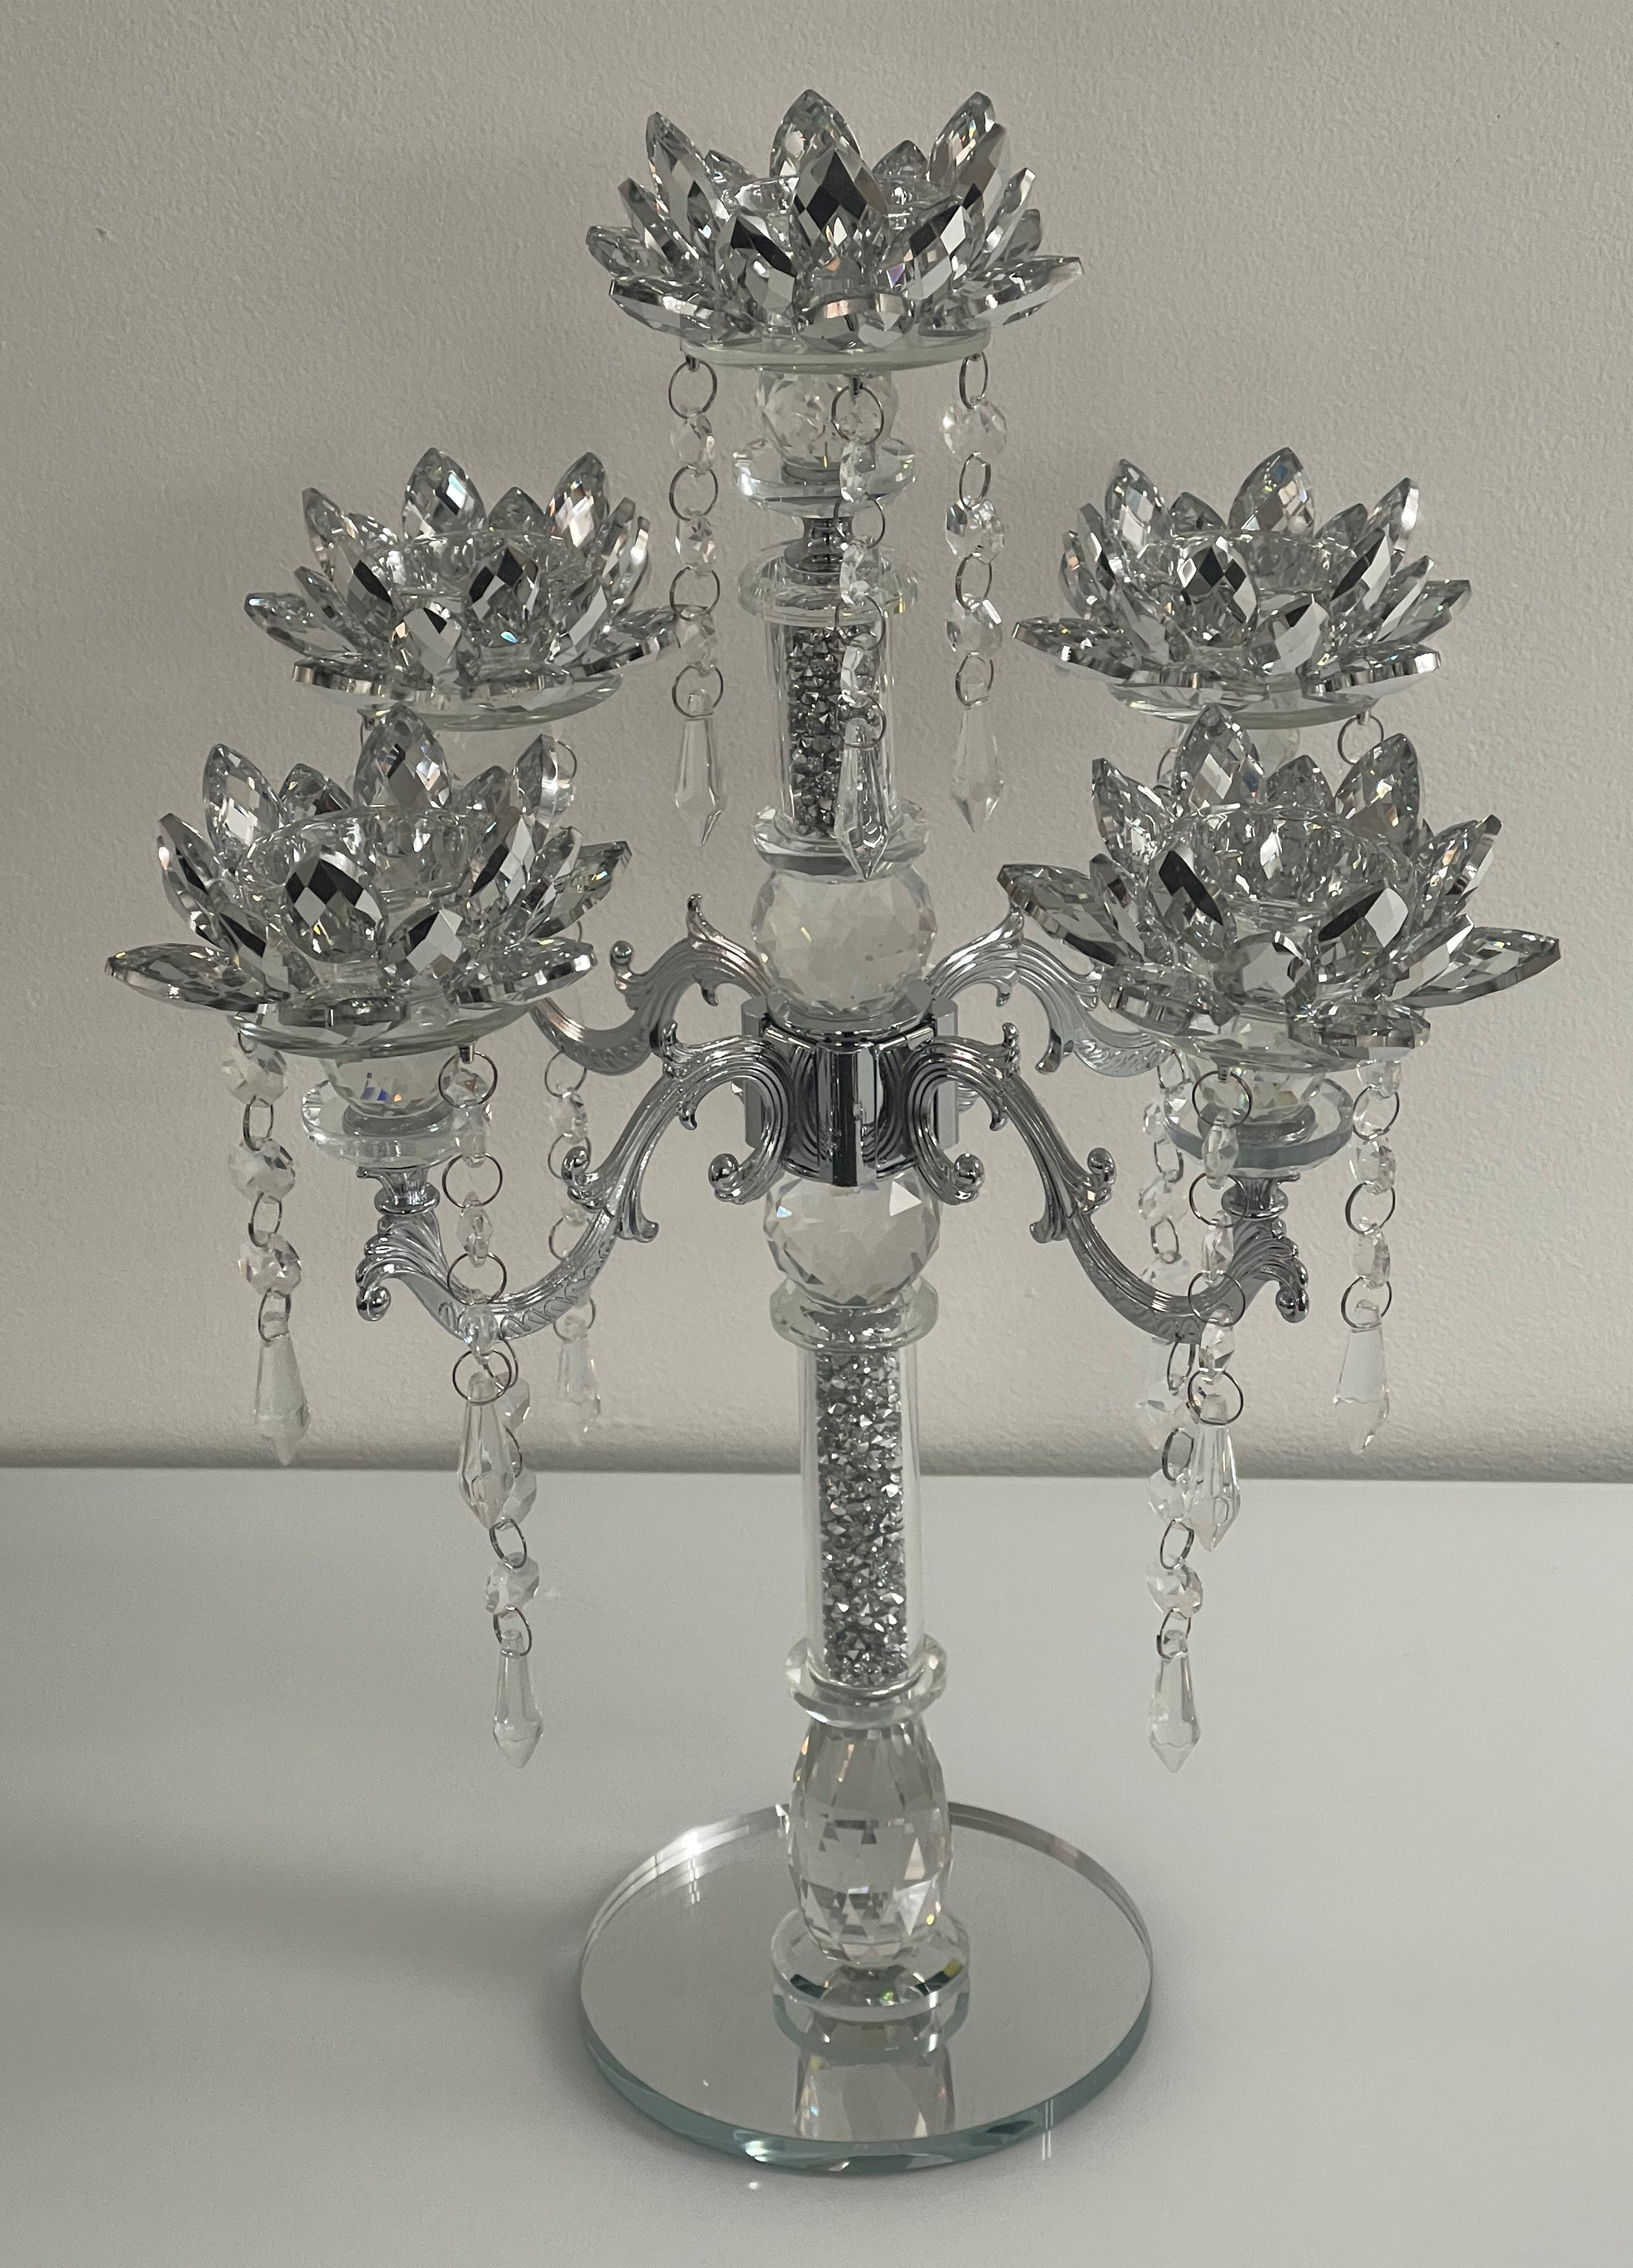 Crystal Flower 5 Arm Diamond Crush Candelabra with Hanging Crystals